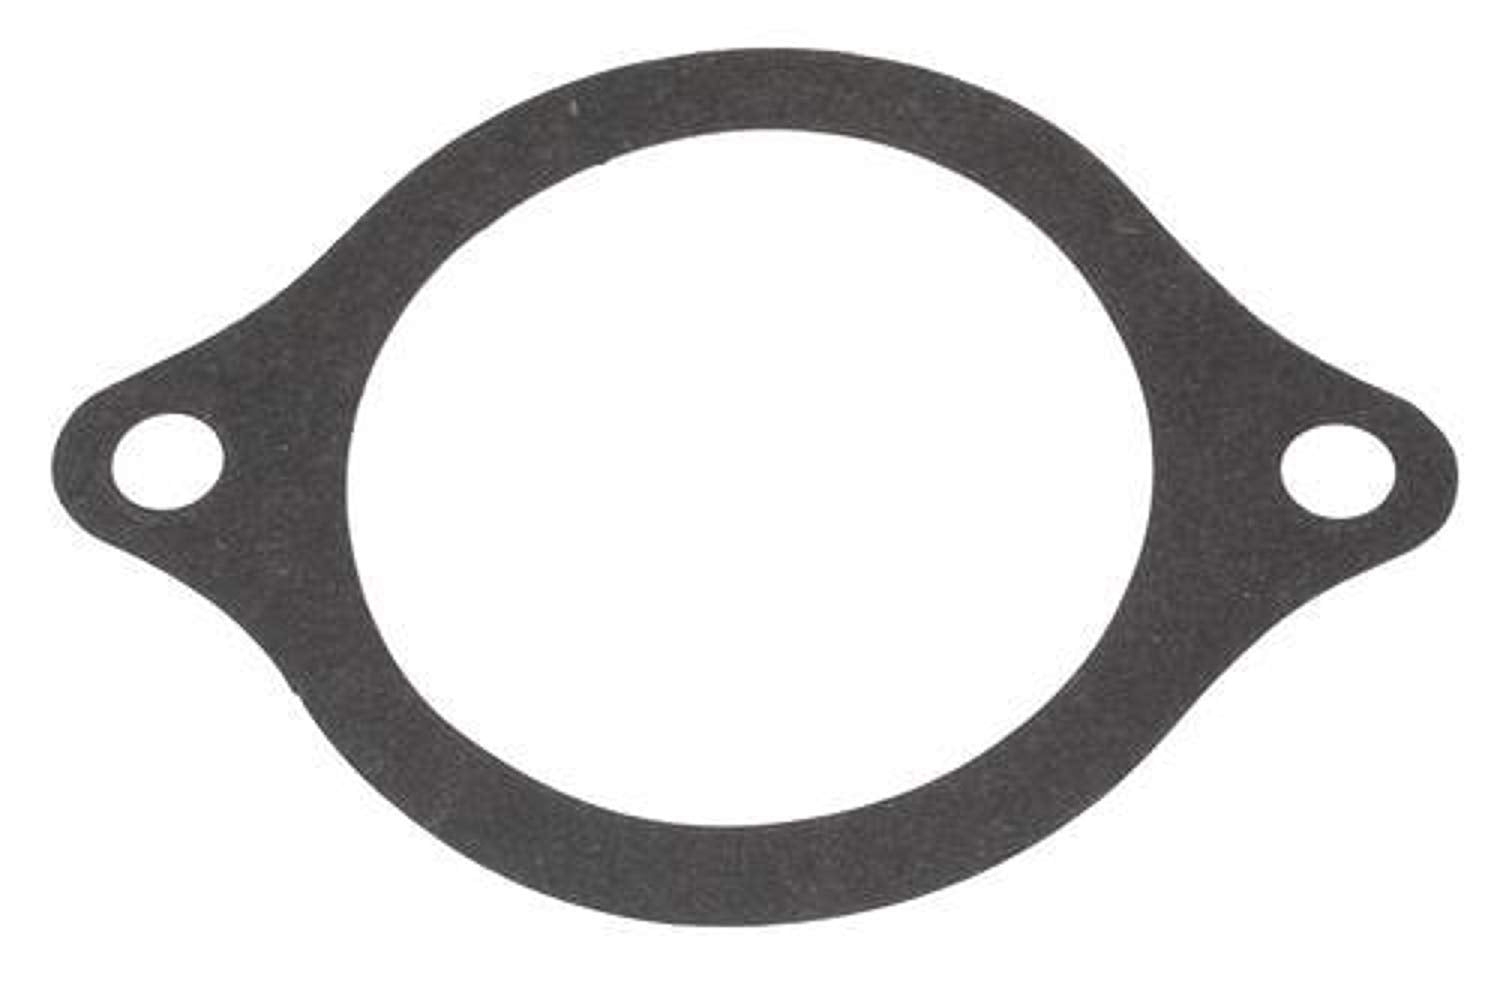 Replacement Governor Housing Gasket for Ford #9N6022 Fits 2N 8N 9N (Multi-Packs) (2)